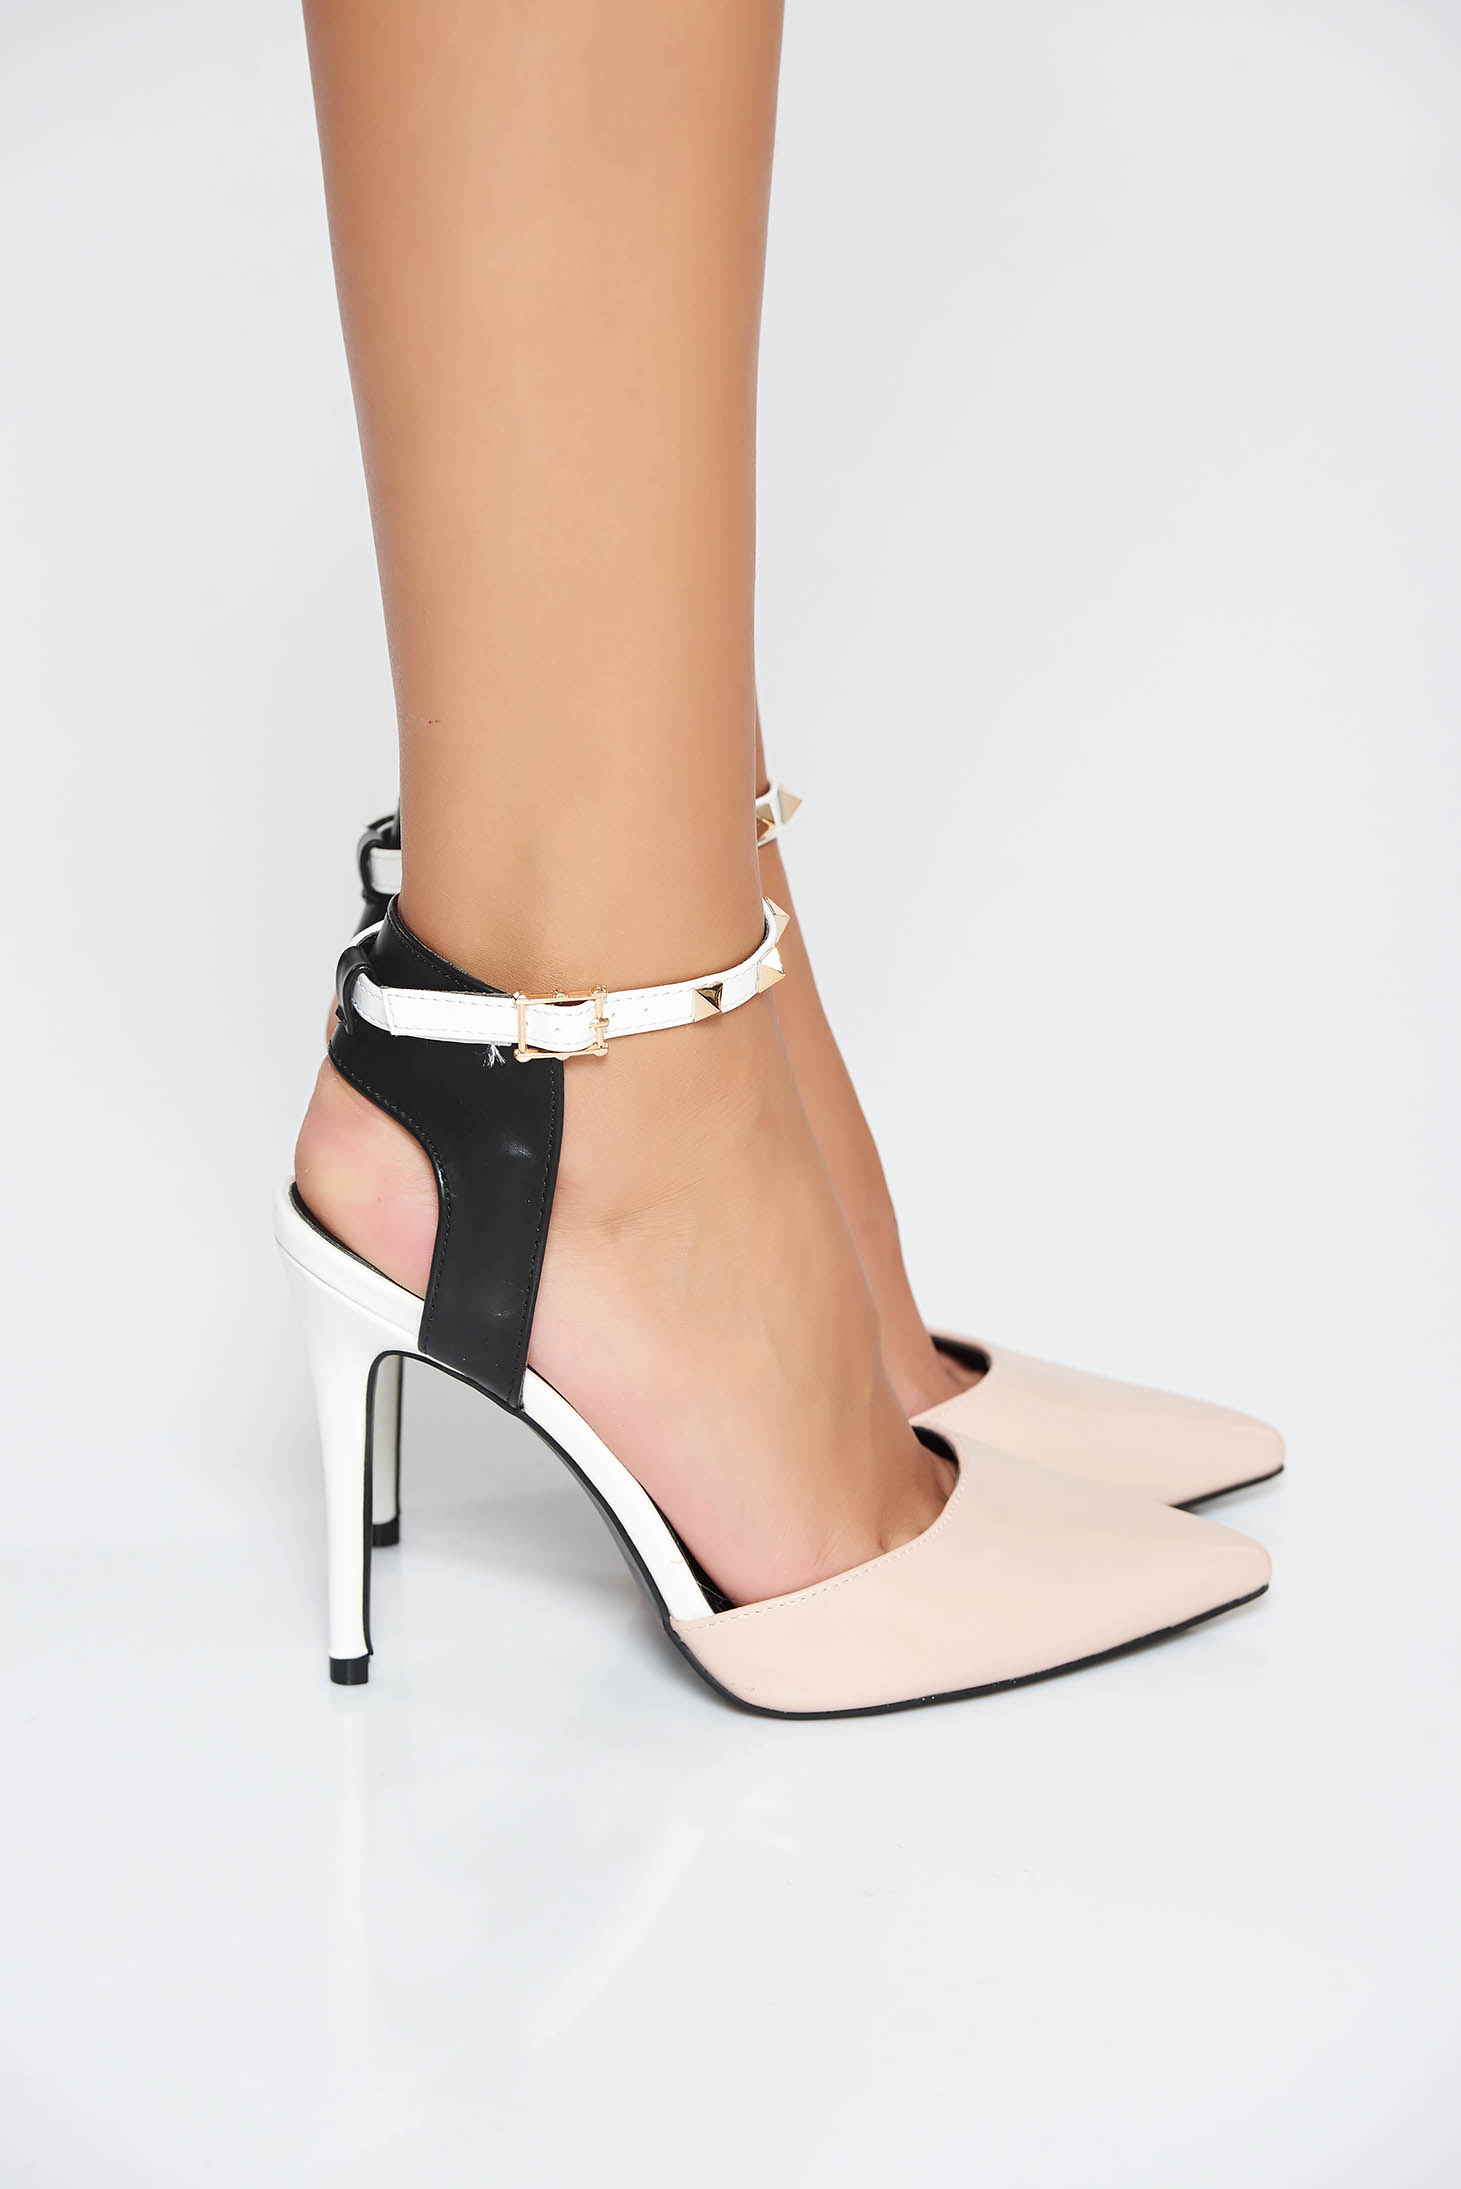 Cream elegant shoes from ecological leather with high heels aims